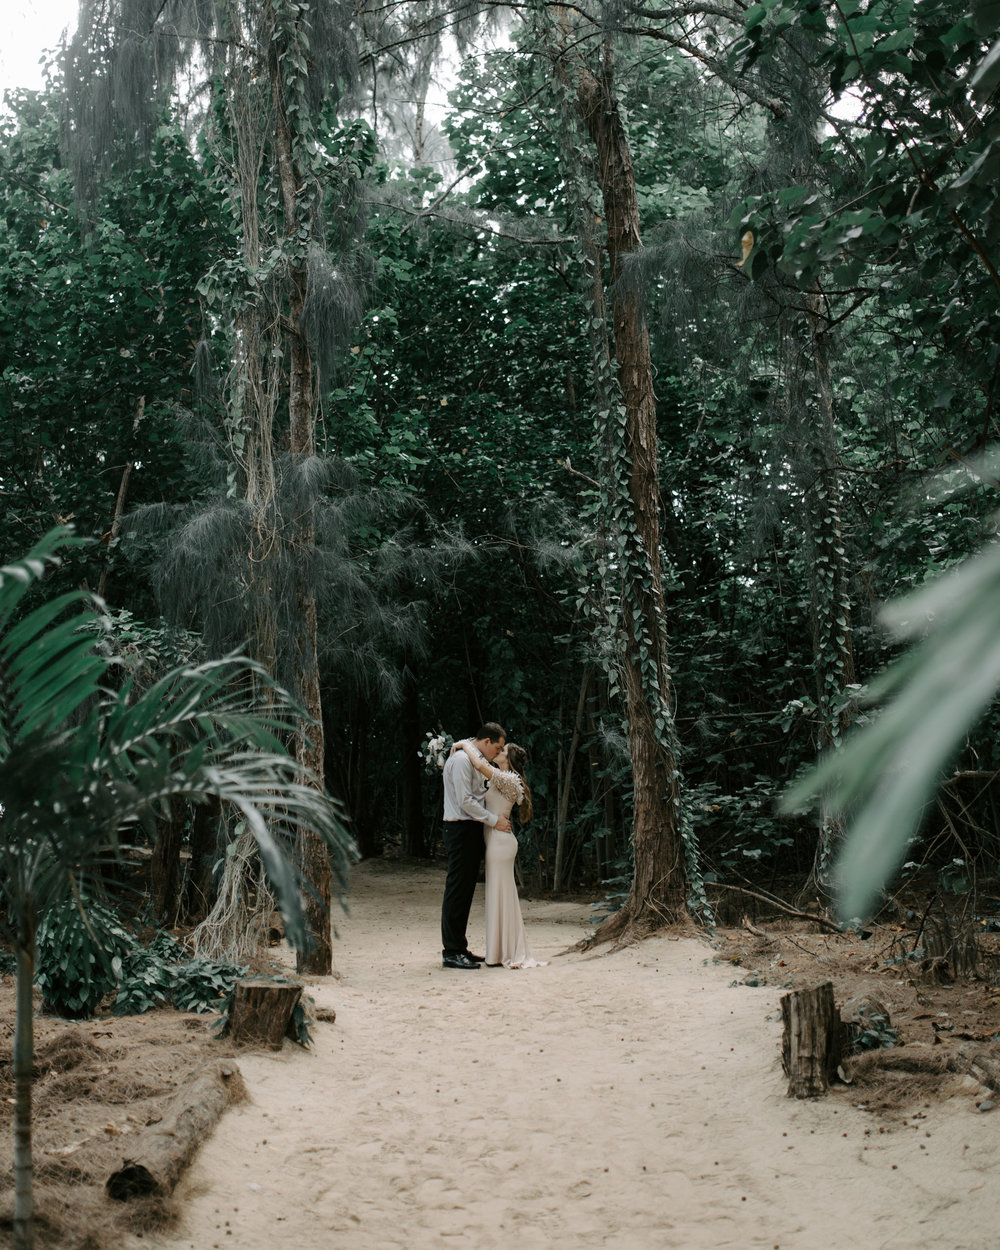 Tropical Hawaii Wedding | Kualoa Ranch Secret Island Elopement by Hawaii Wedding Photographer Desiree Leilani